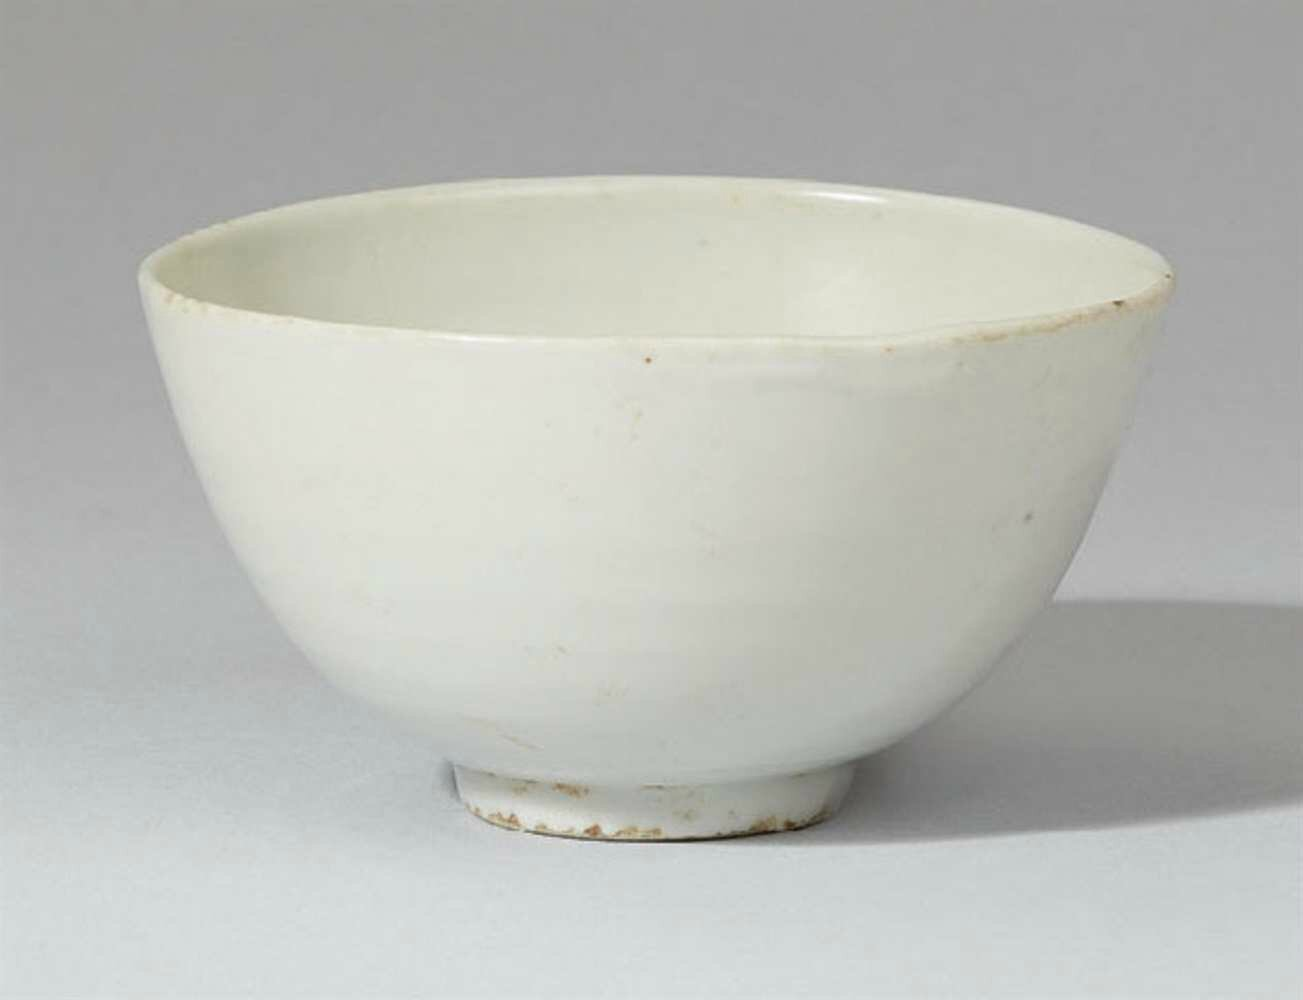 A greyish-white glazed bowl, Ming dynasty, 16th century